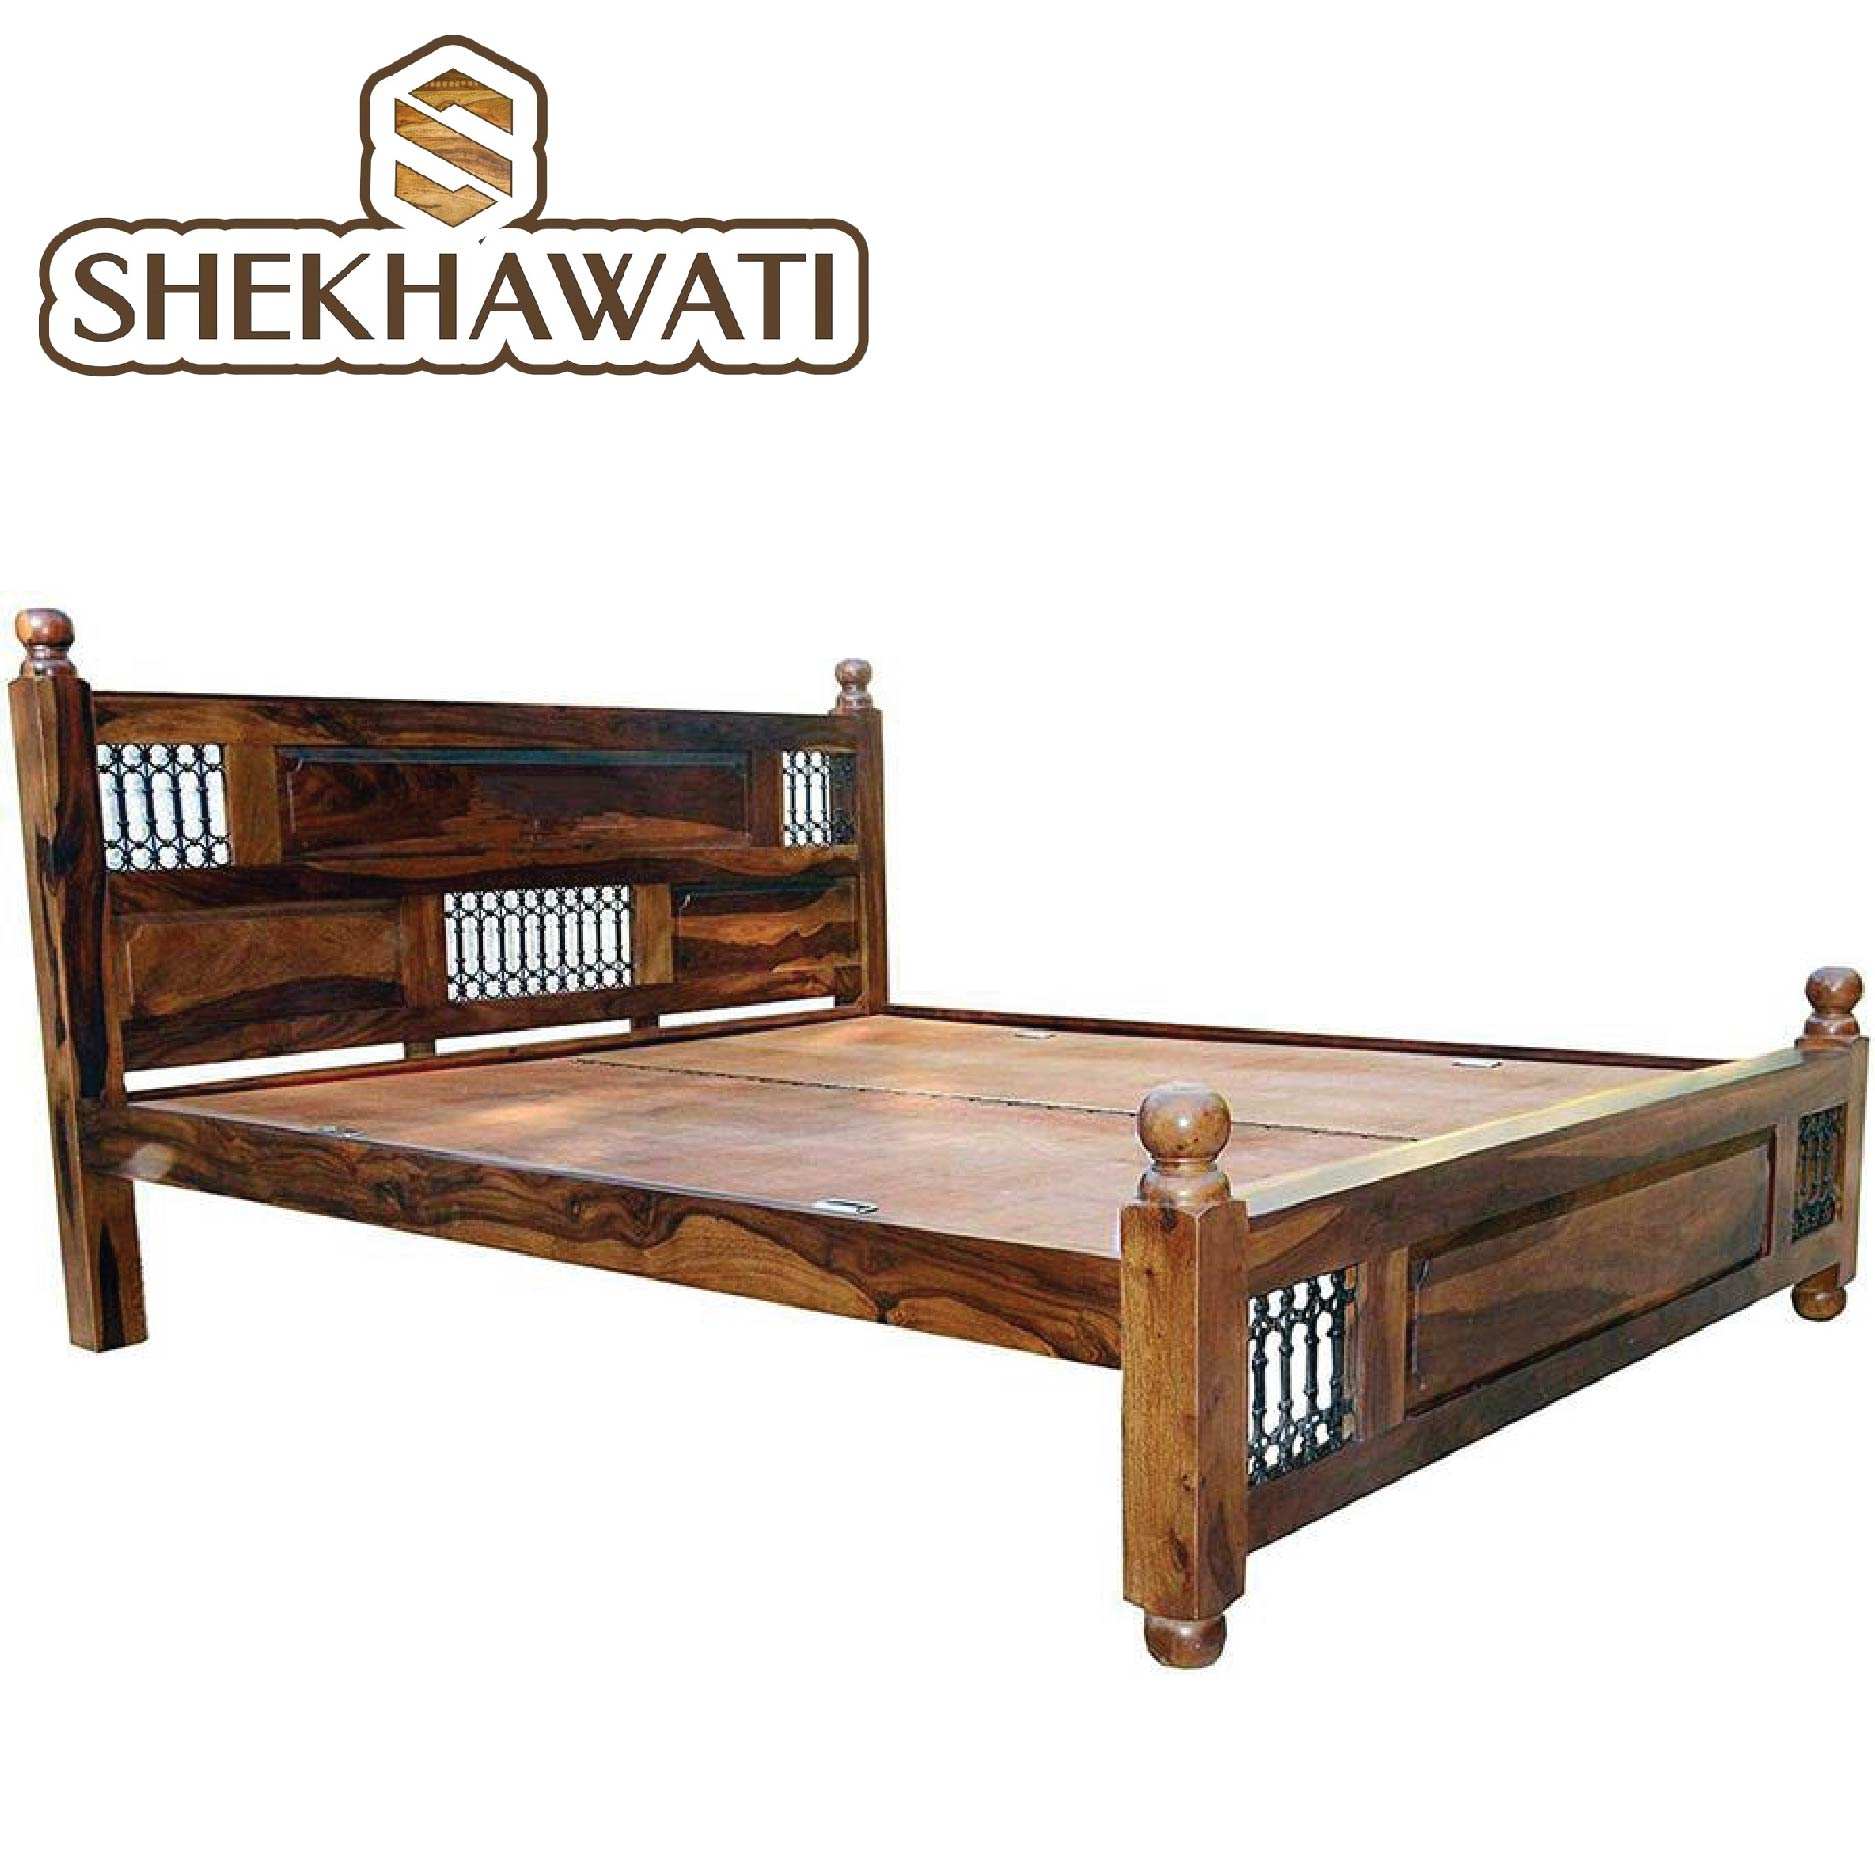 Grill King Size WIthout Storage bed